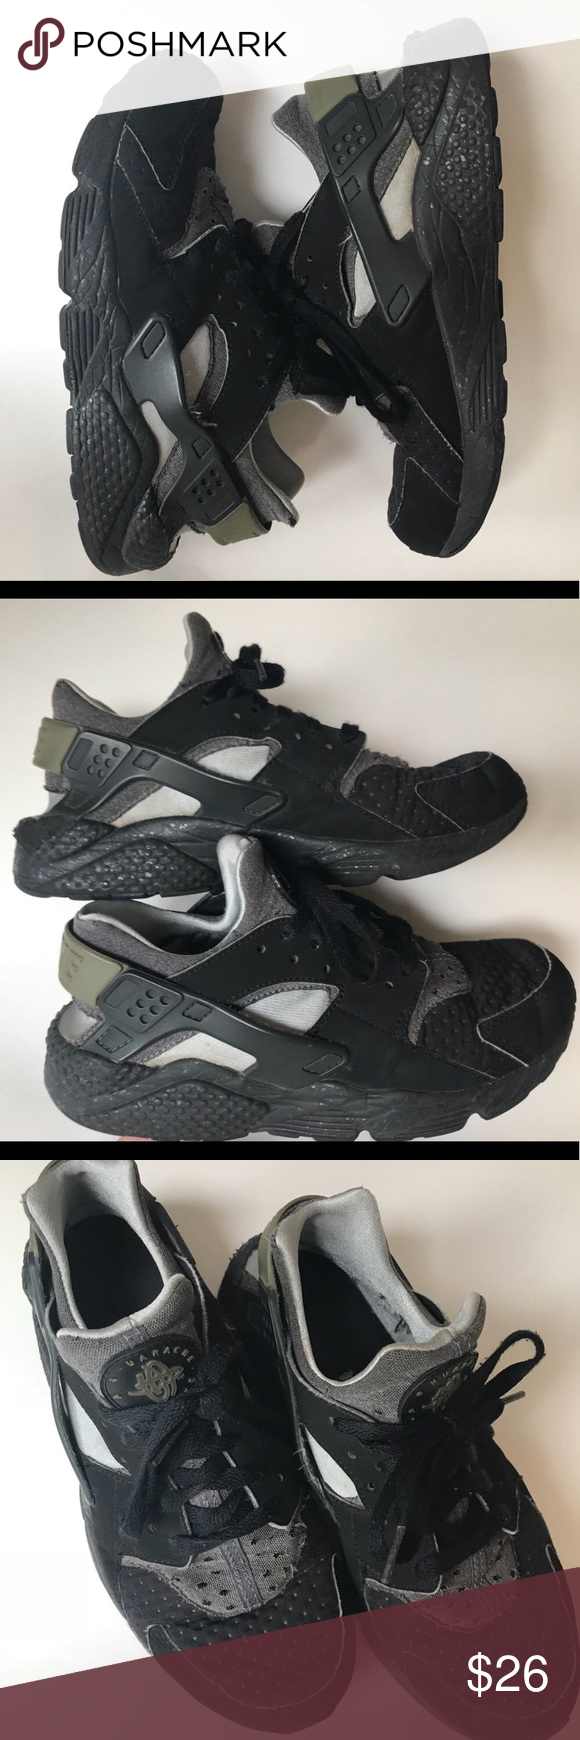 Nike Air Huaraches Men's Size 8 The most comfortable shoes